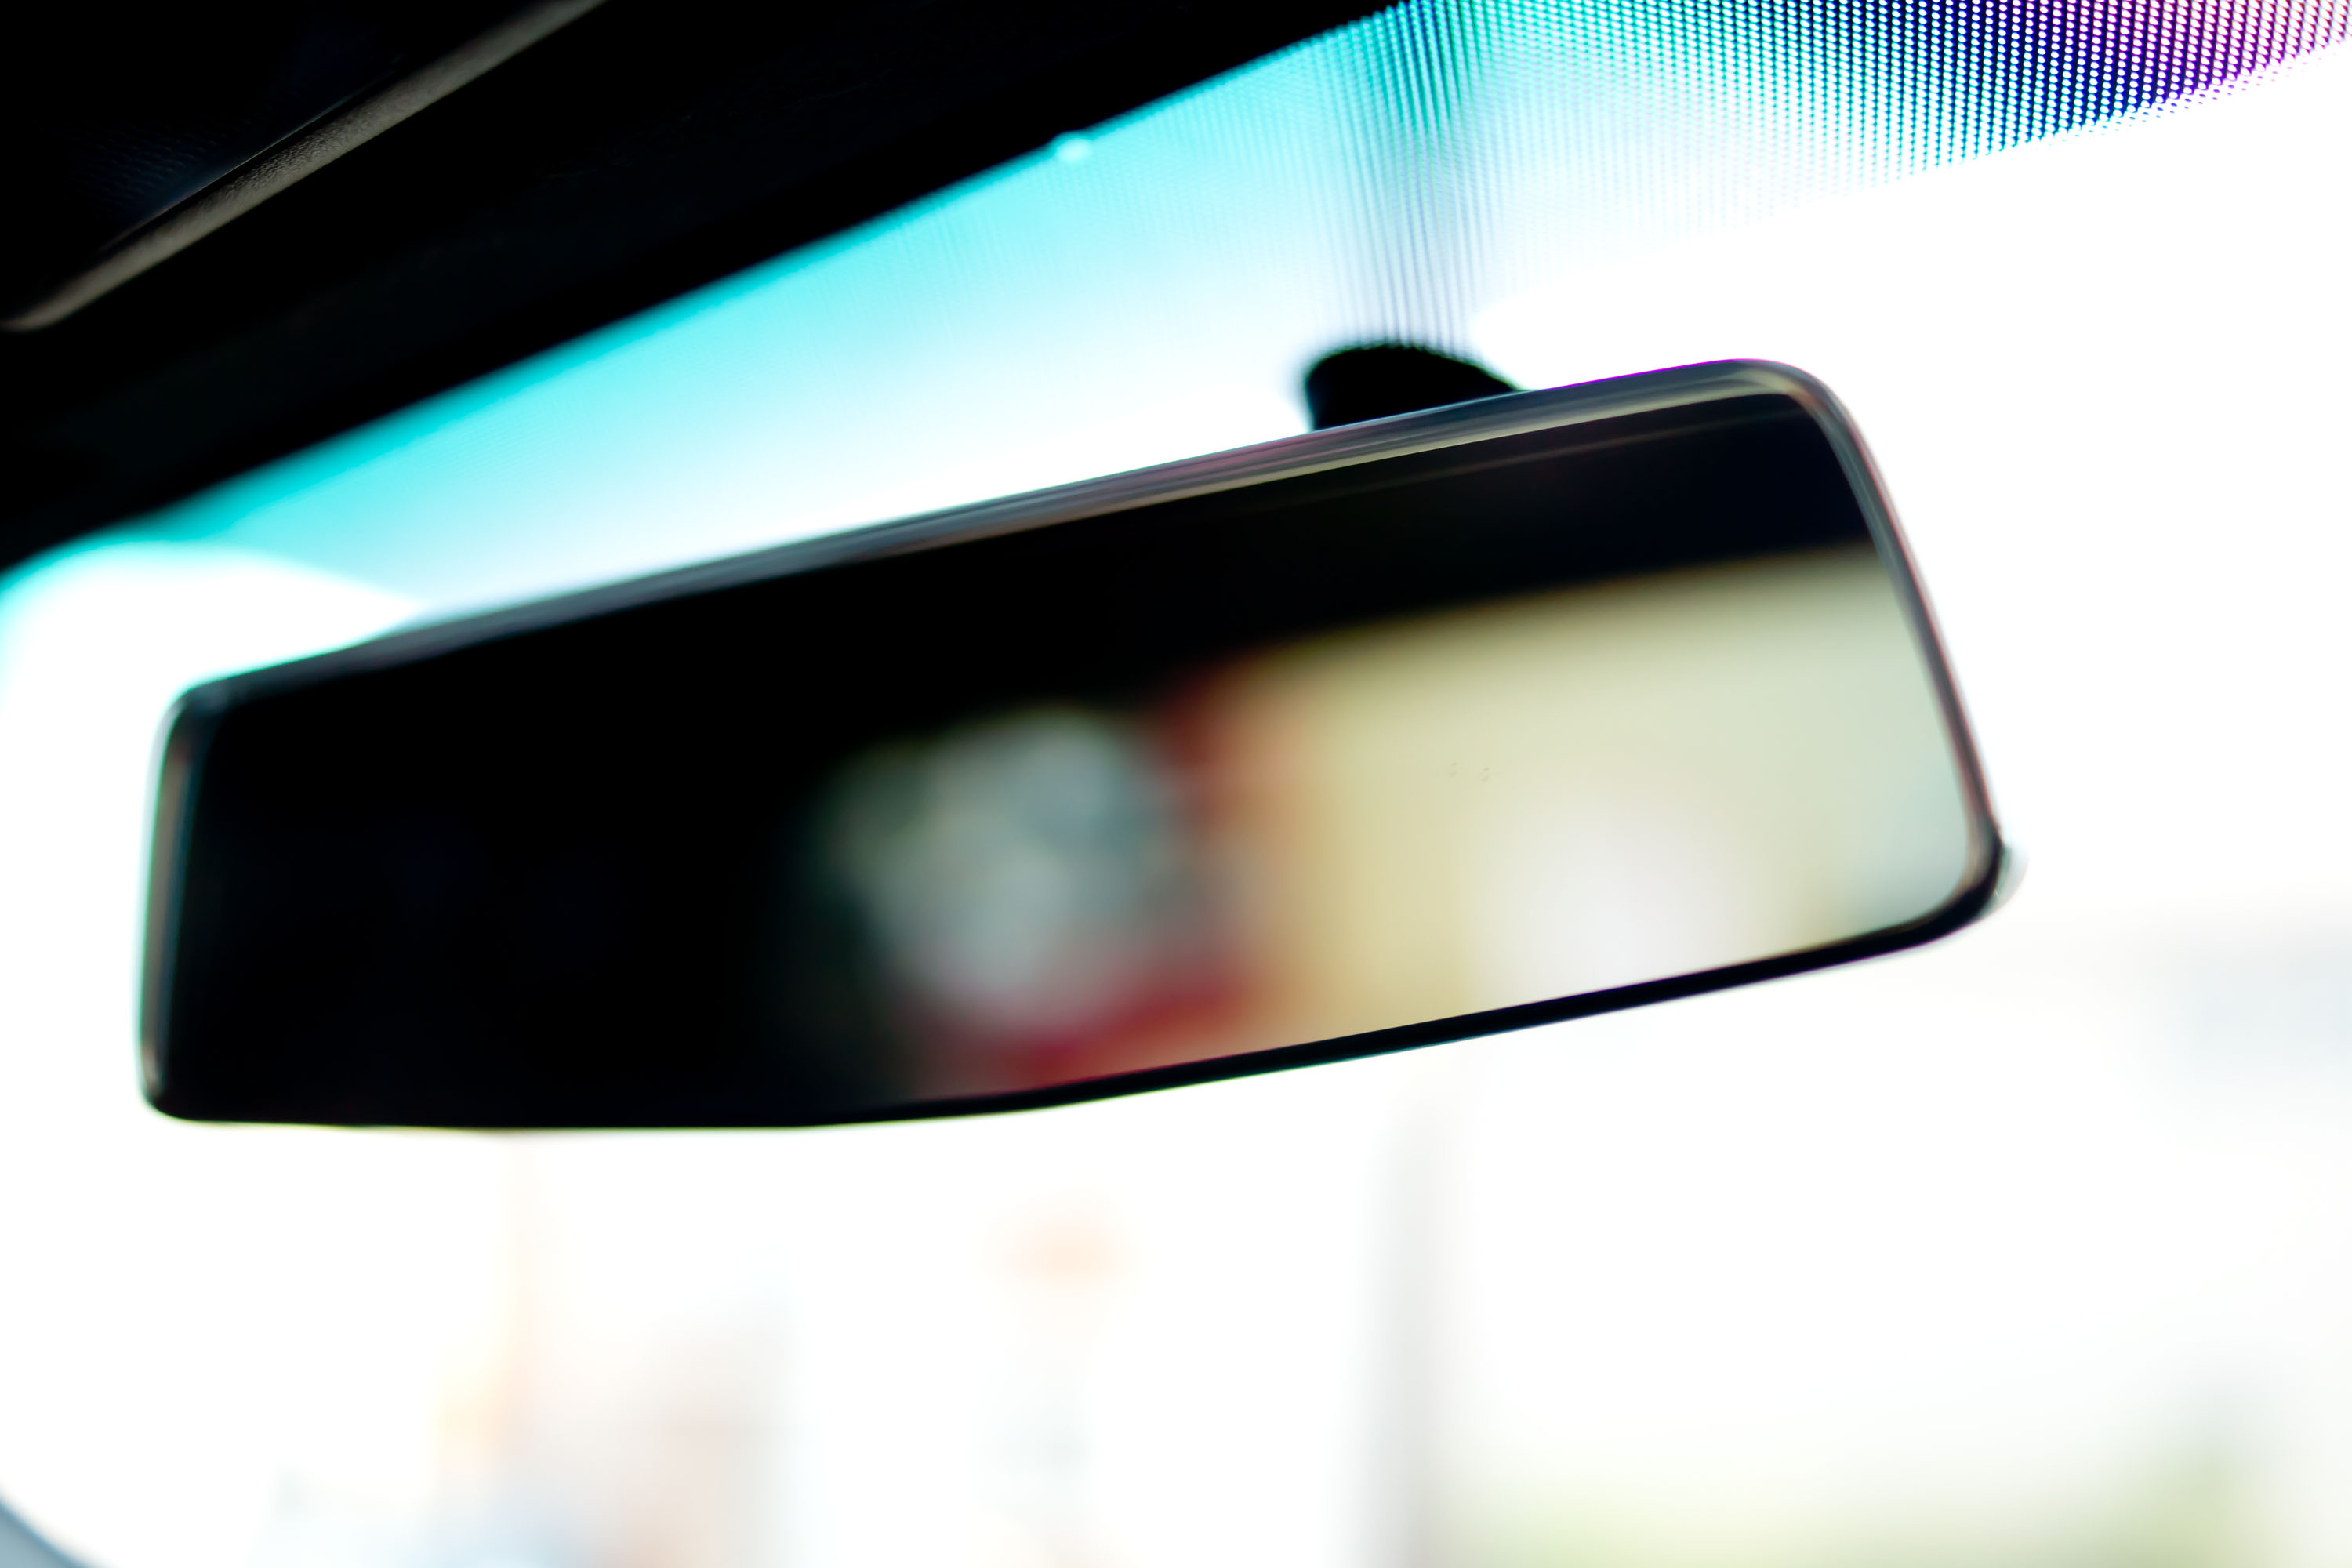 http://upload.wikimedia.org/wikipedia/commons/9/9c/Toyota_86_GT_-_Rear-view_Mirror.jpg